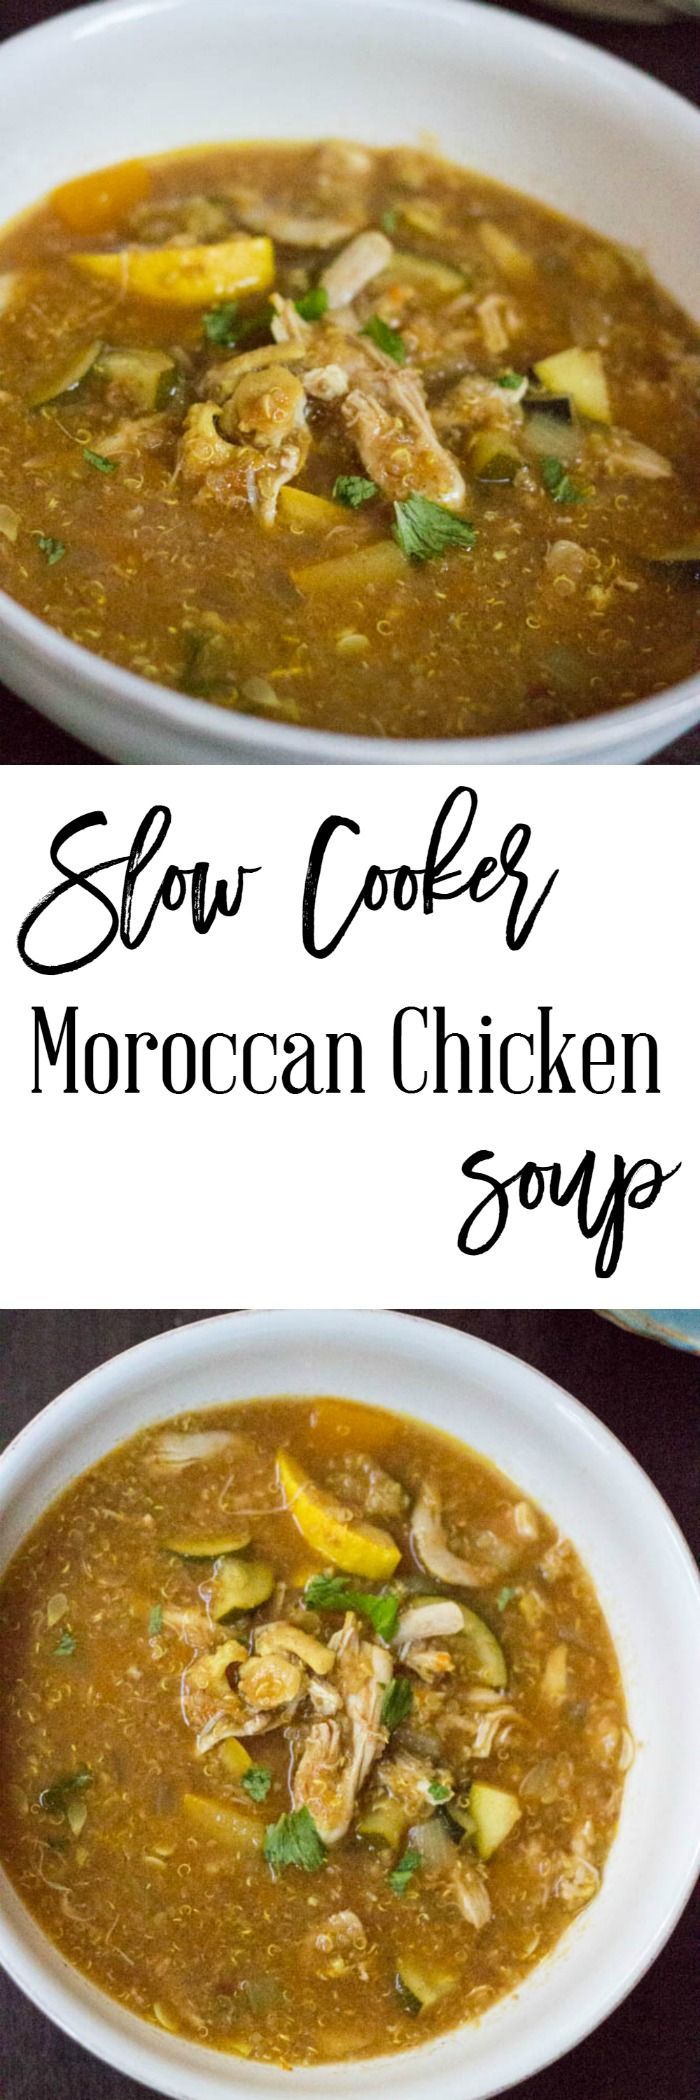 Slow Cooker Moroccan Chicken Soup - When you don't have a lot of time to cook dinner, try this easy slow cooker Moroccan chicken soup recipe. It's healthy, only 4 SmartPoints per serving on Weight Watchers and tastes great.